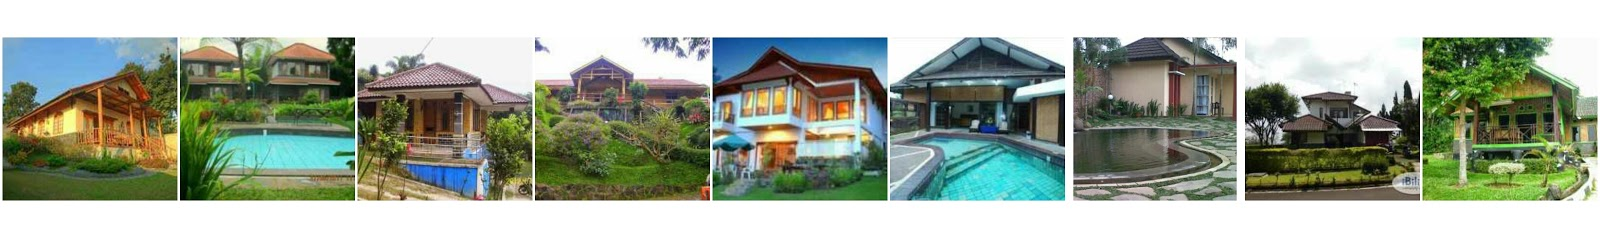 property purchasing process in bali